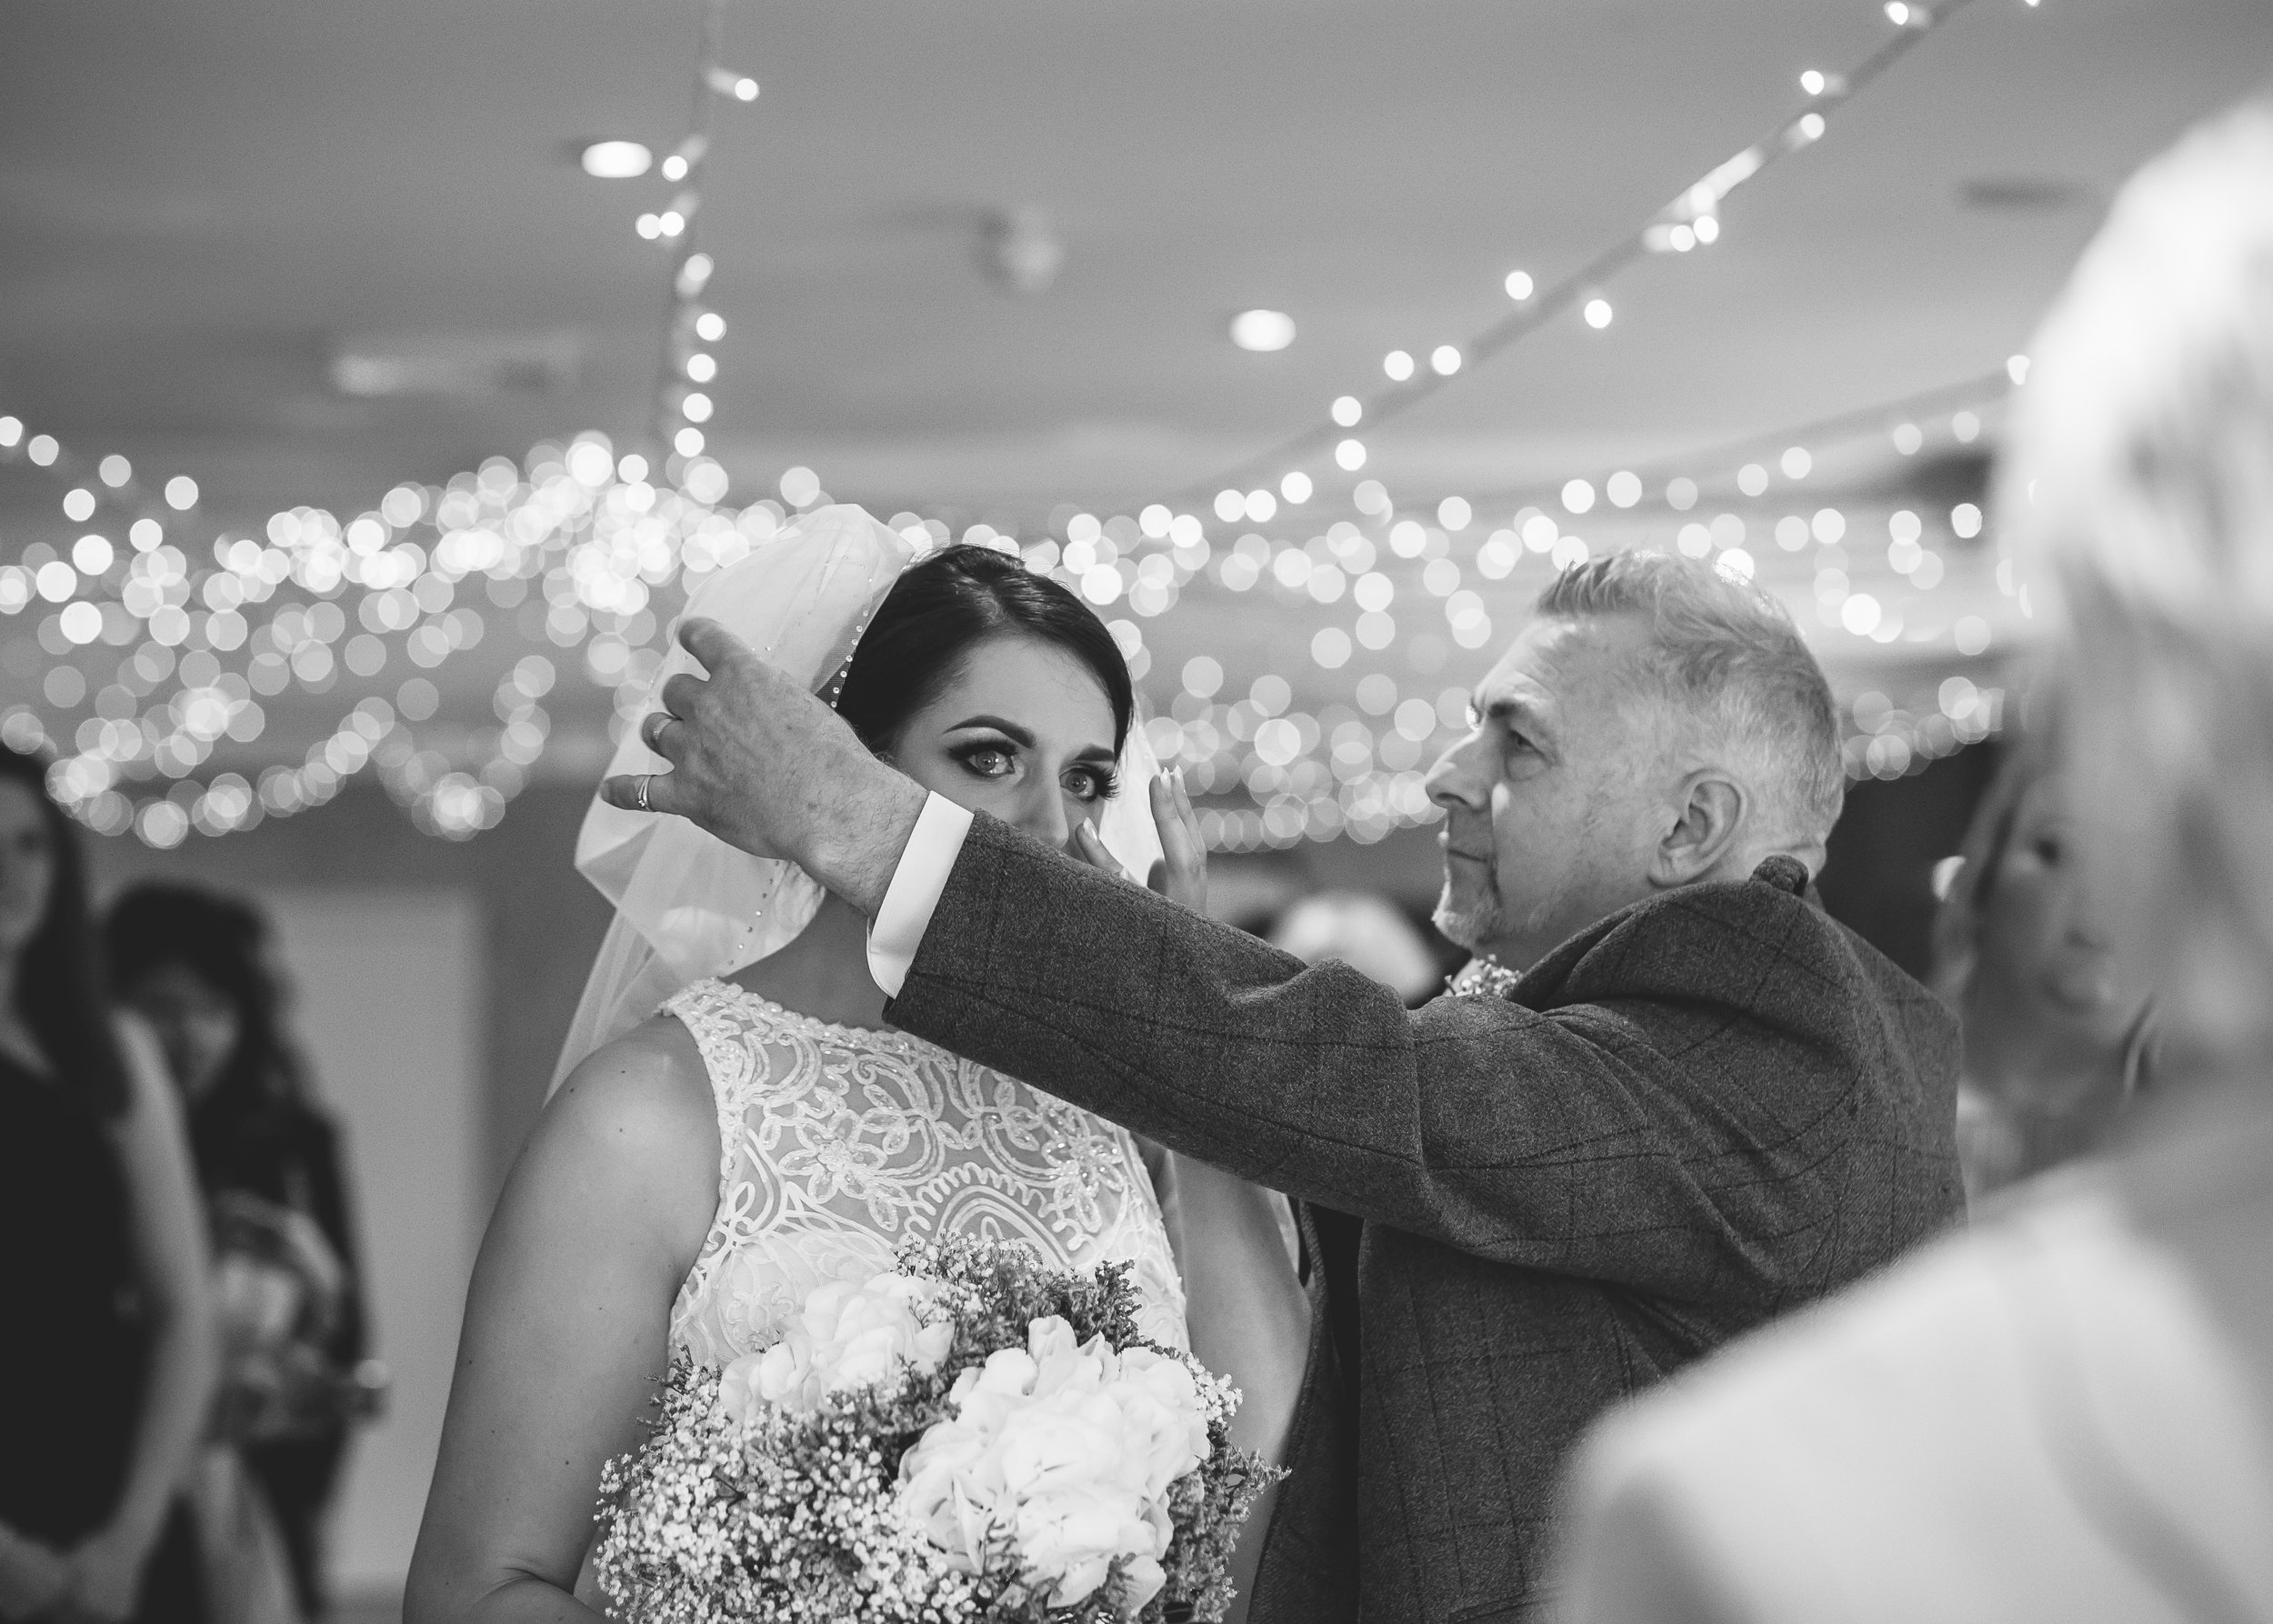 Banchory lodge, wedding photographers aberdeen, aberdeen wedding photographer, aberdeen wedding photography, candid wedding photography aberdeen, Scottish wedding photographer